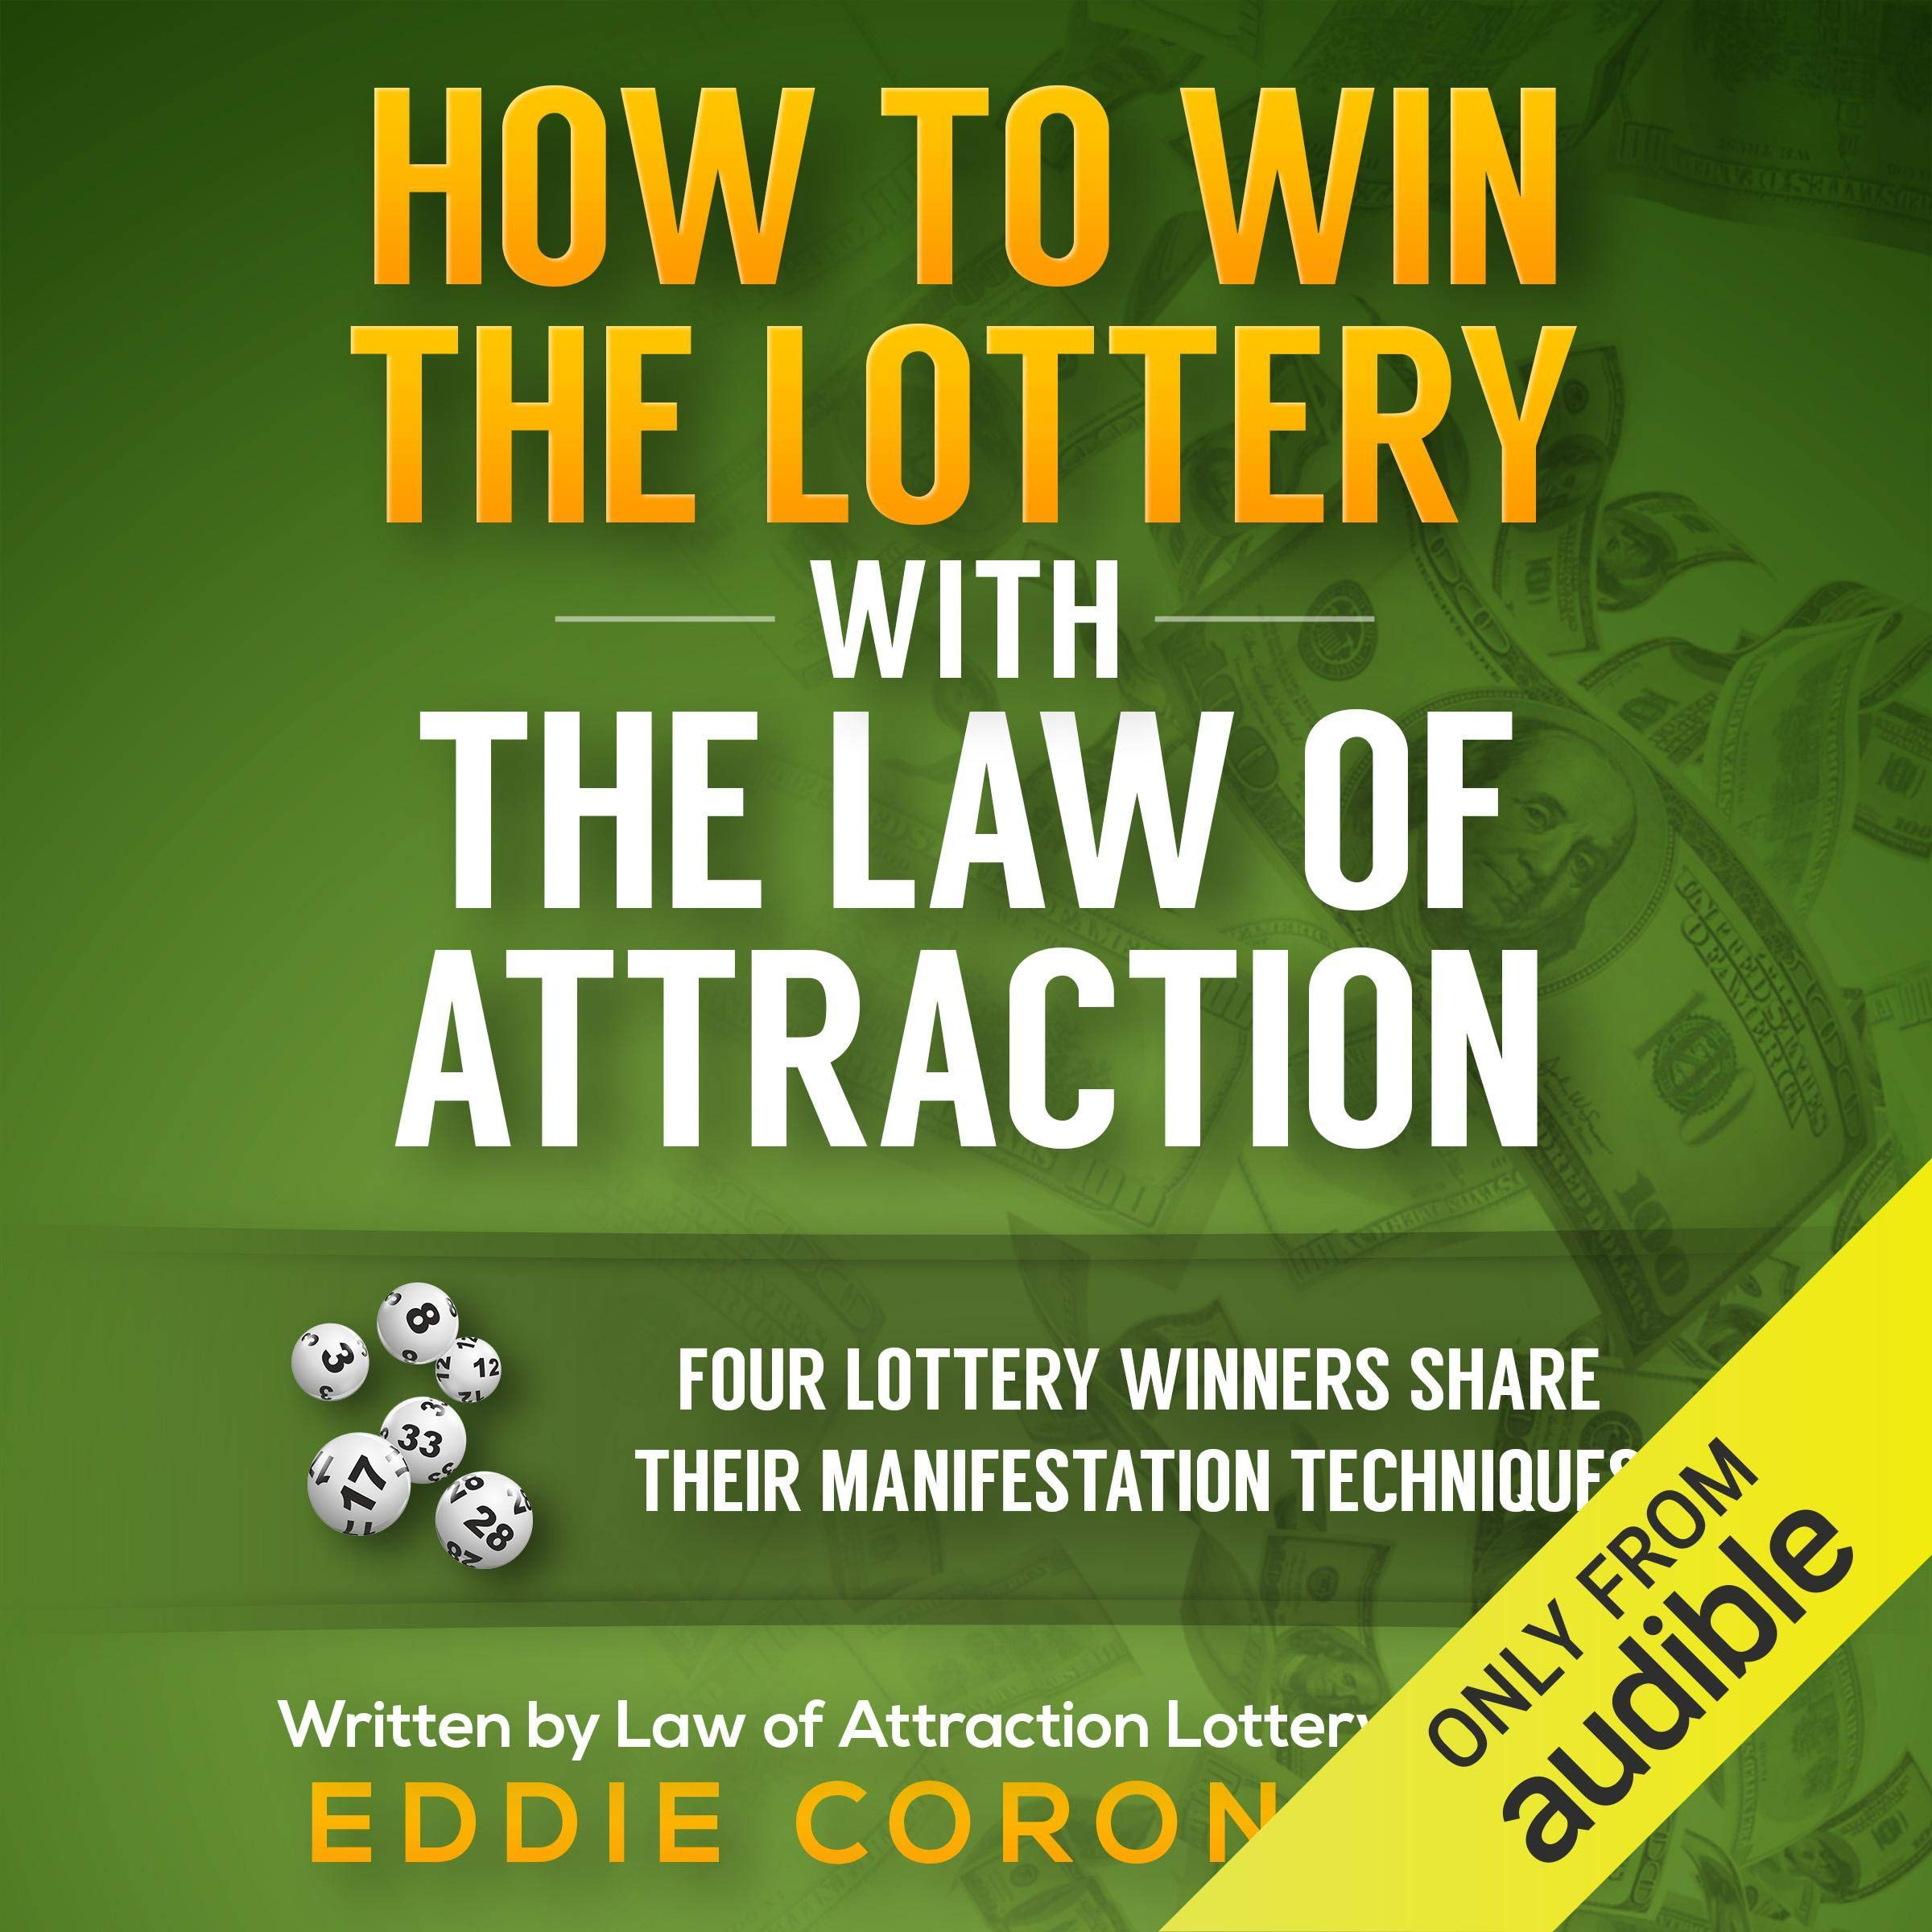 How To Win The Lottery With The Law Of Attraction  Four Lottery Winners Share Their Manifestation Techniques